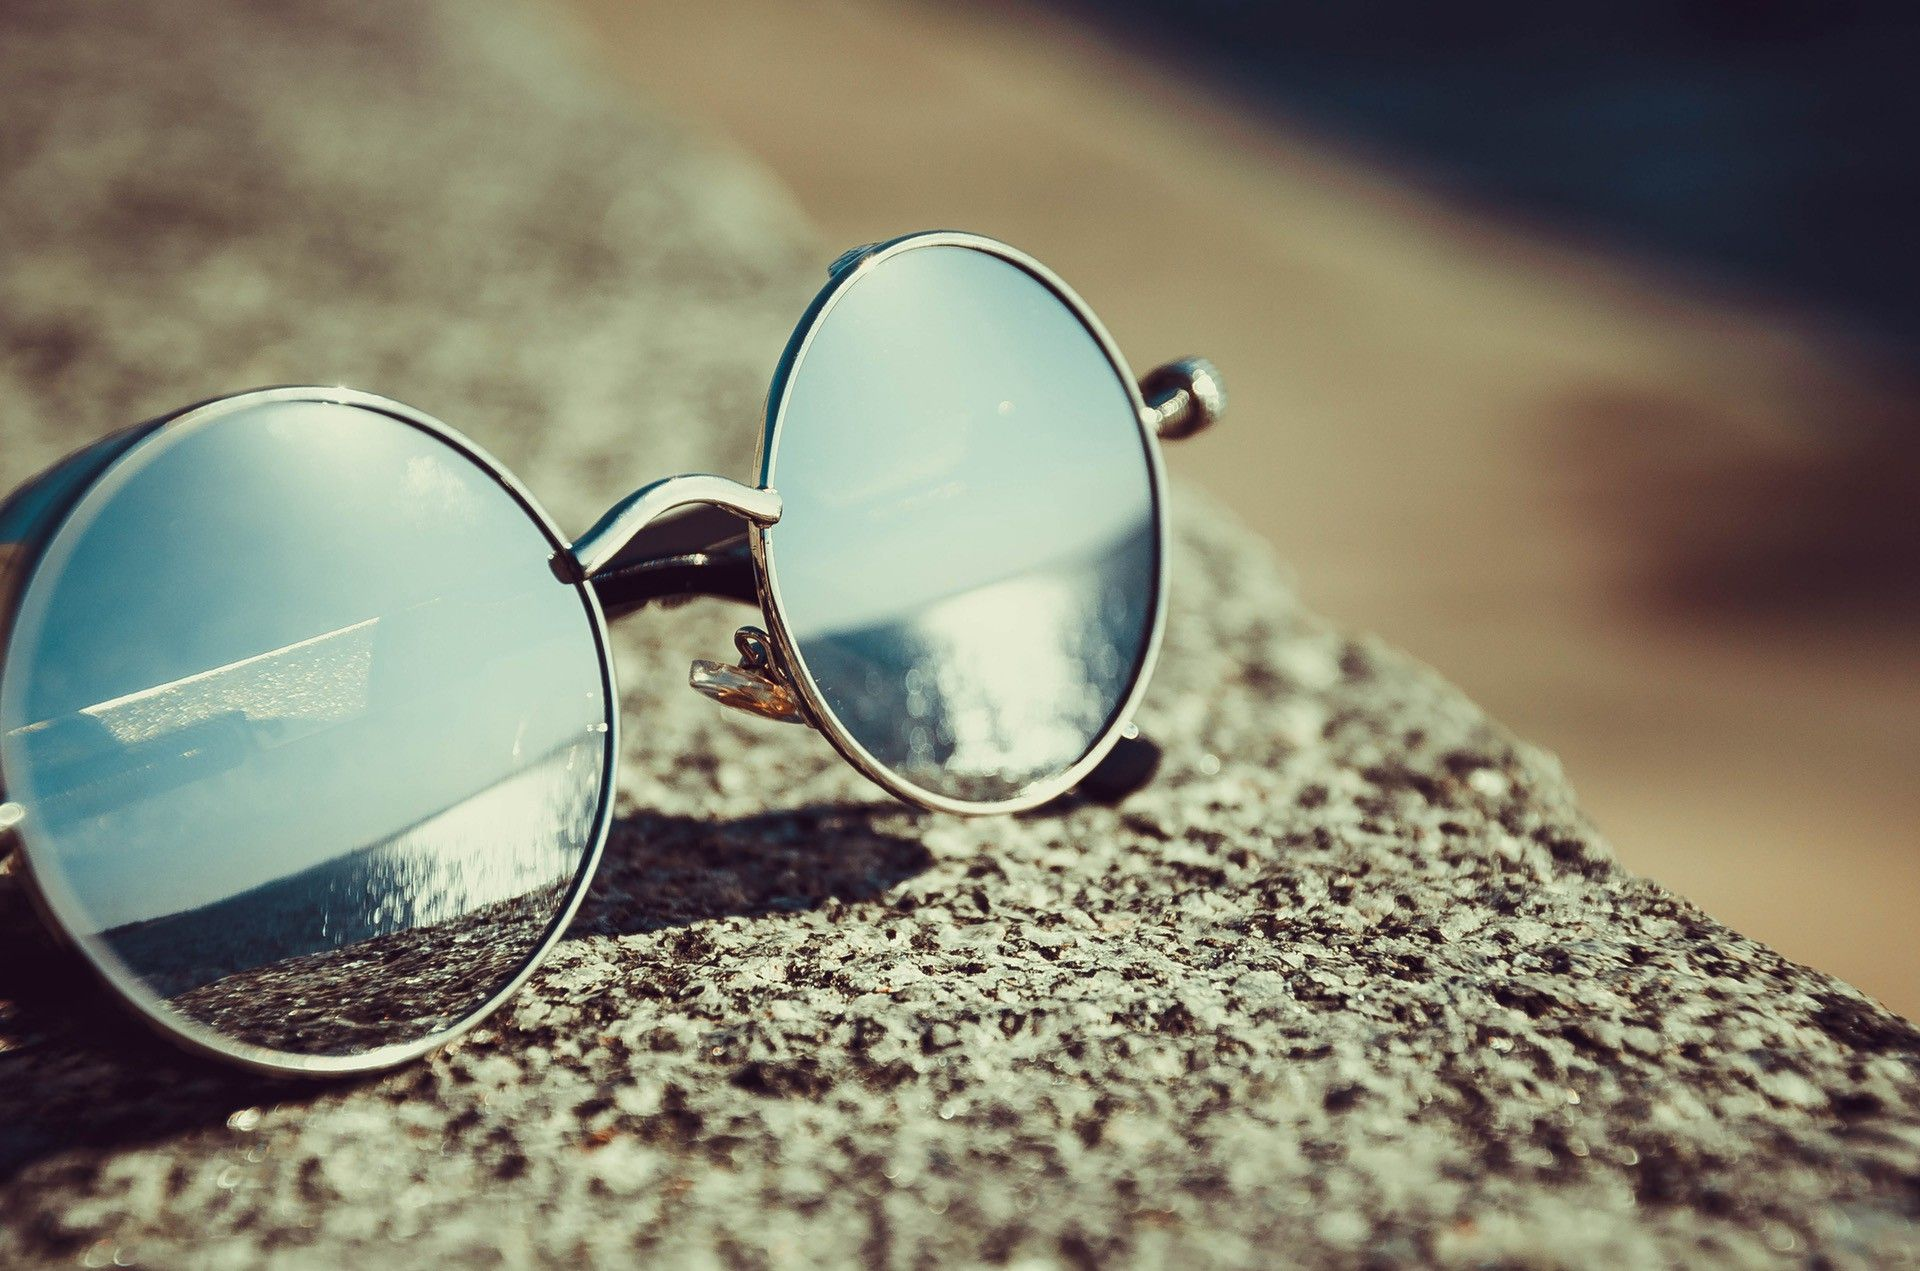 Sunglasses make people look more attractive because they give the illusion of a chiseled bone structure on top of a soft-featured face.